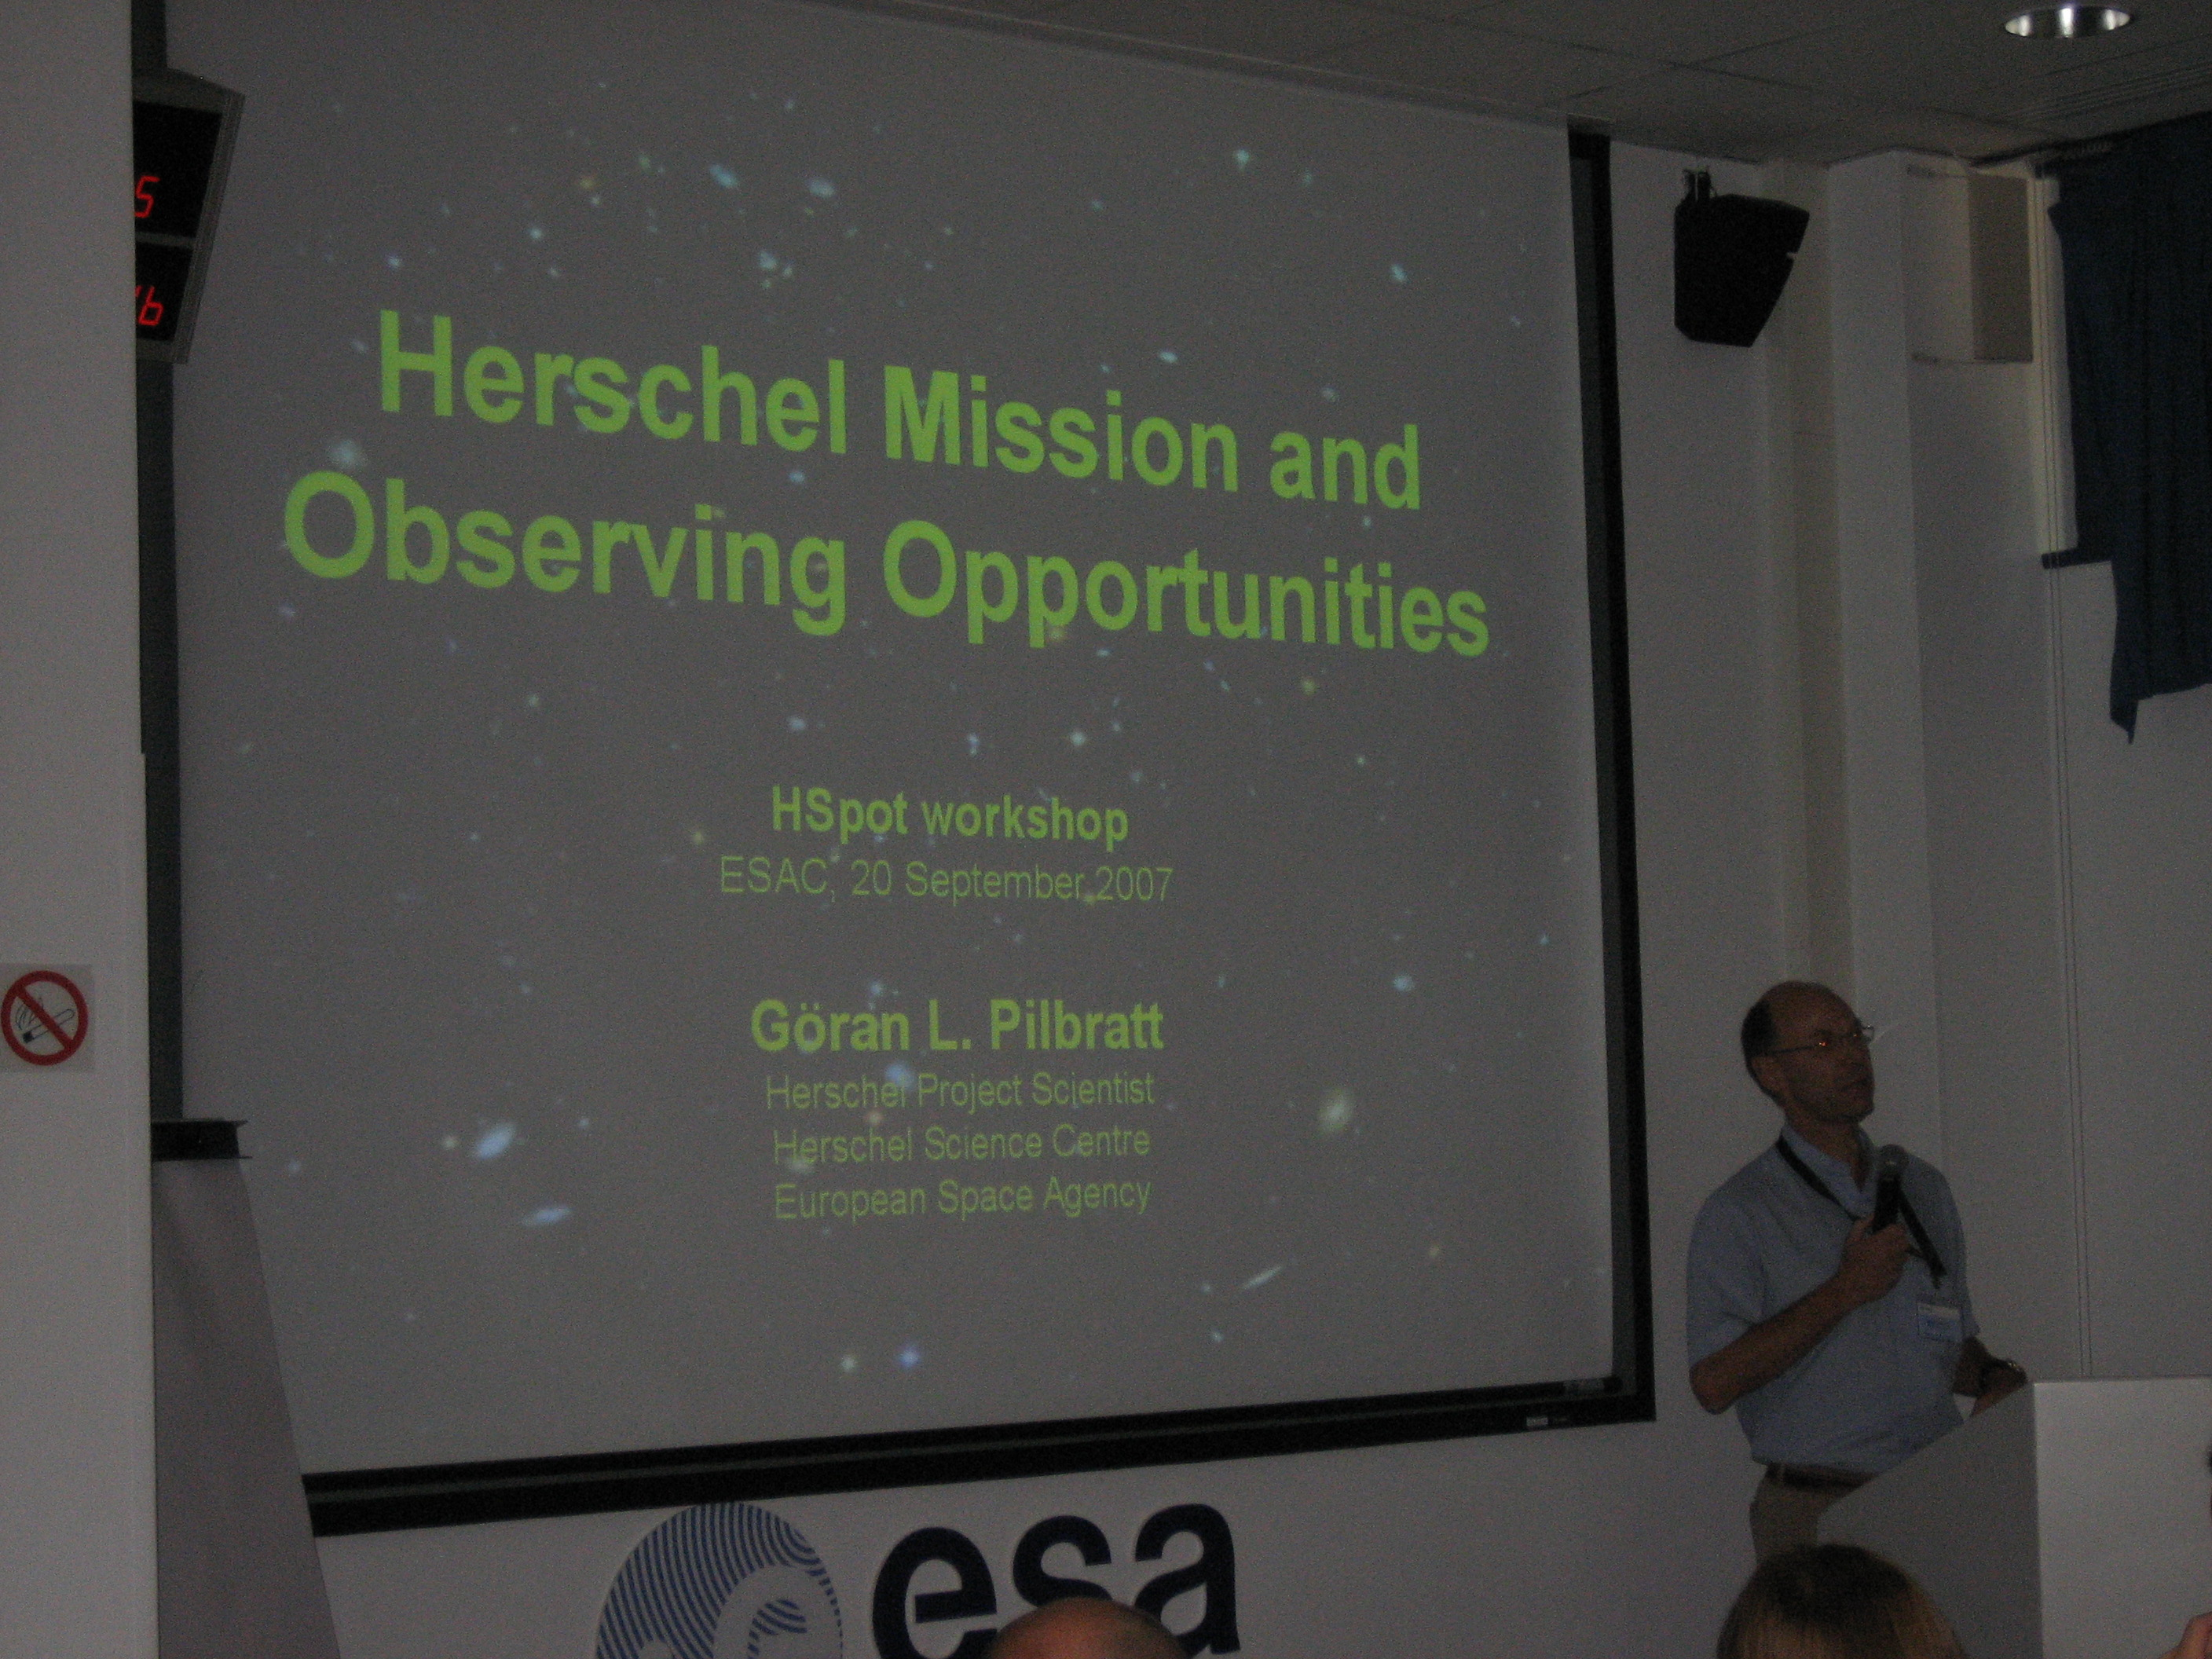 Herschel Mission and Observing Opportunities presentation (G. Pilbratt)